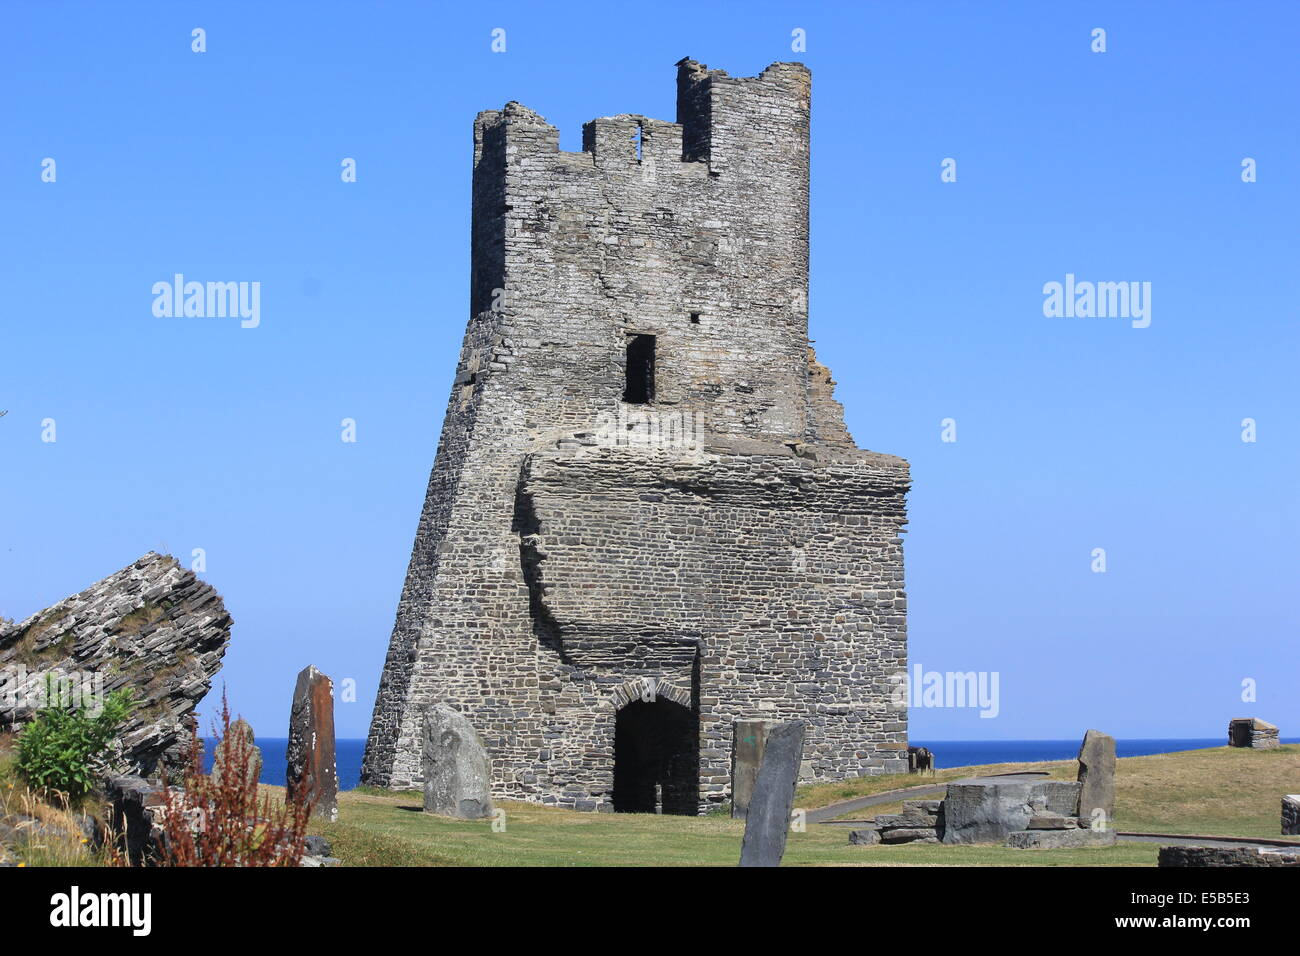 Aberystwyth castle & grounds featuring the main tower overlookig cardigan bay - Stock Image